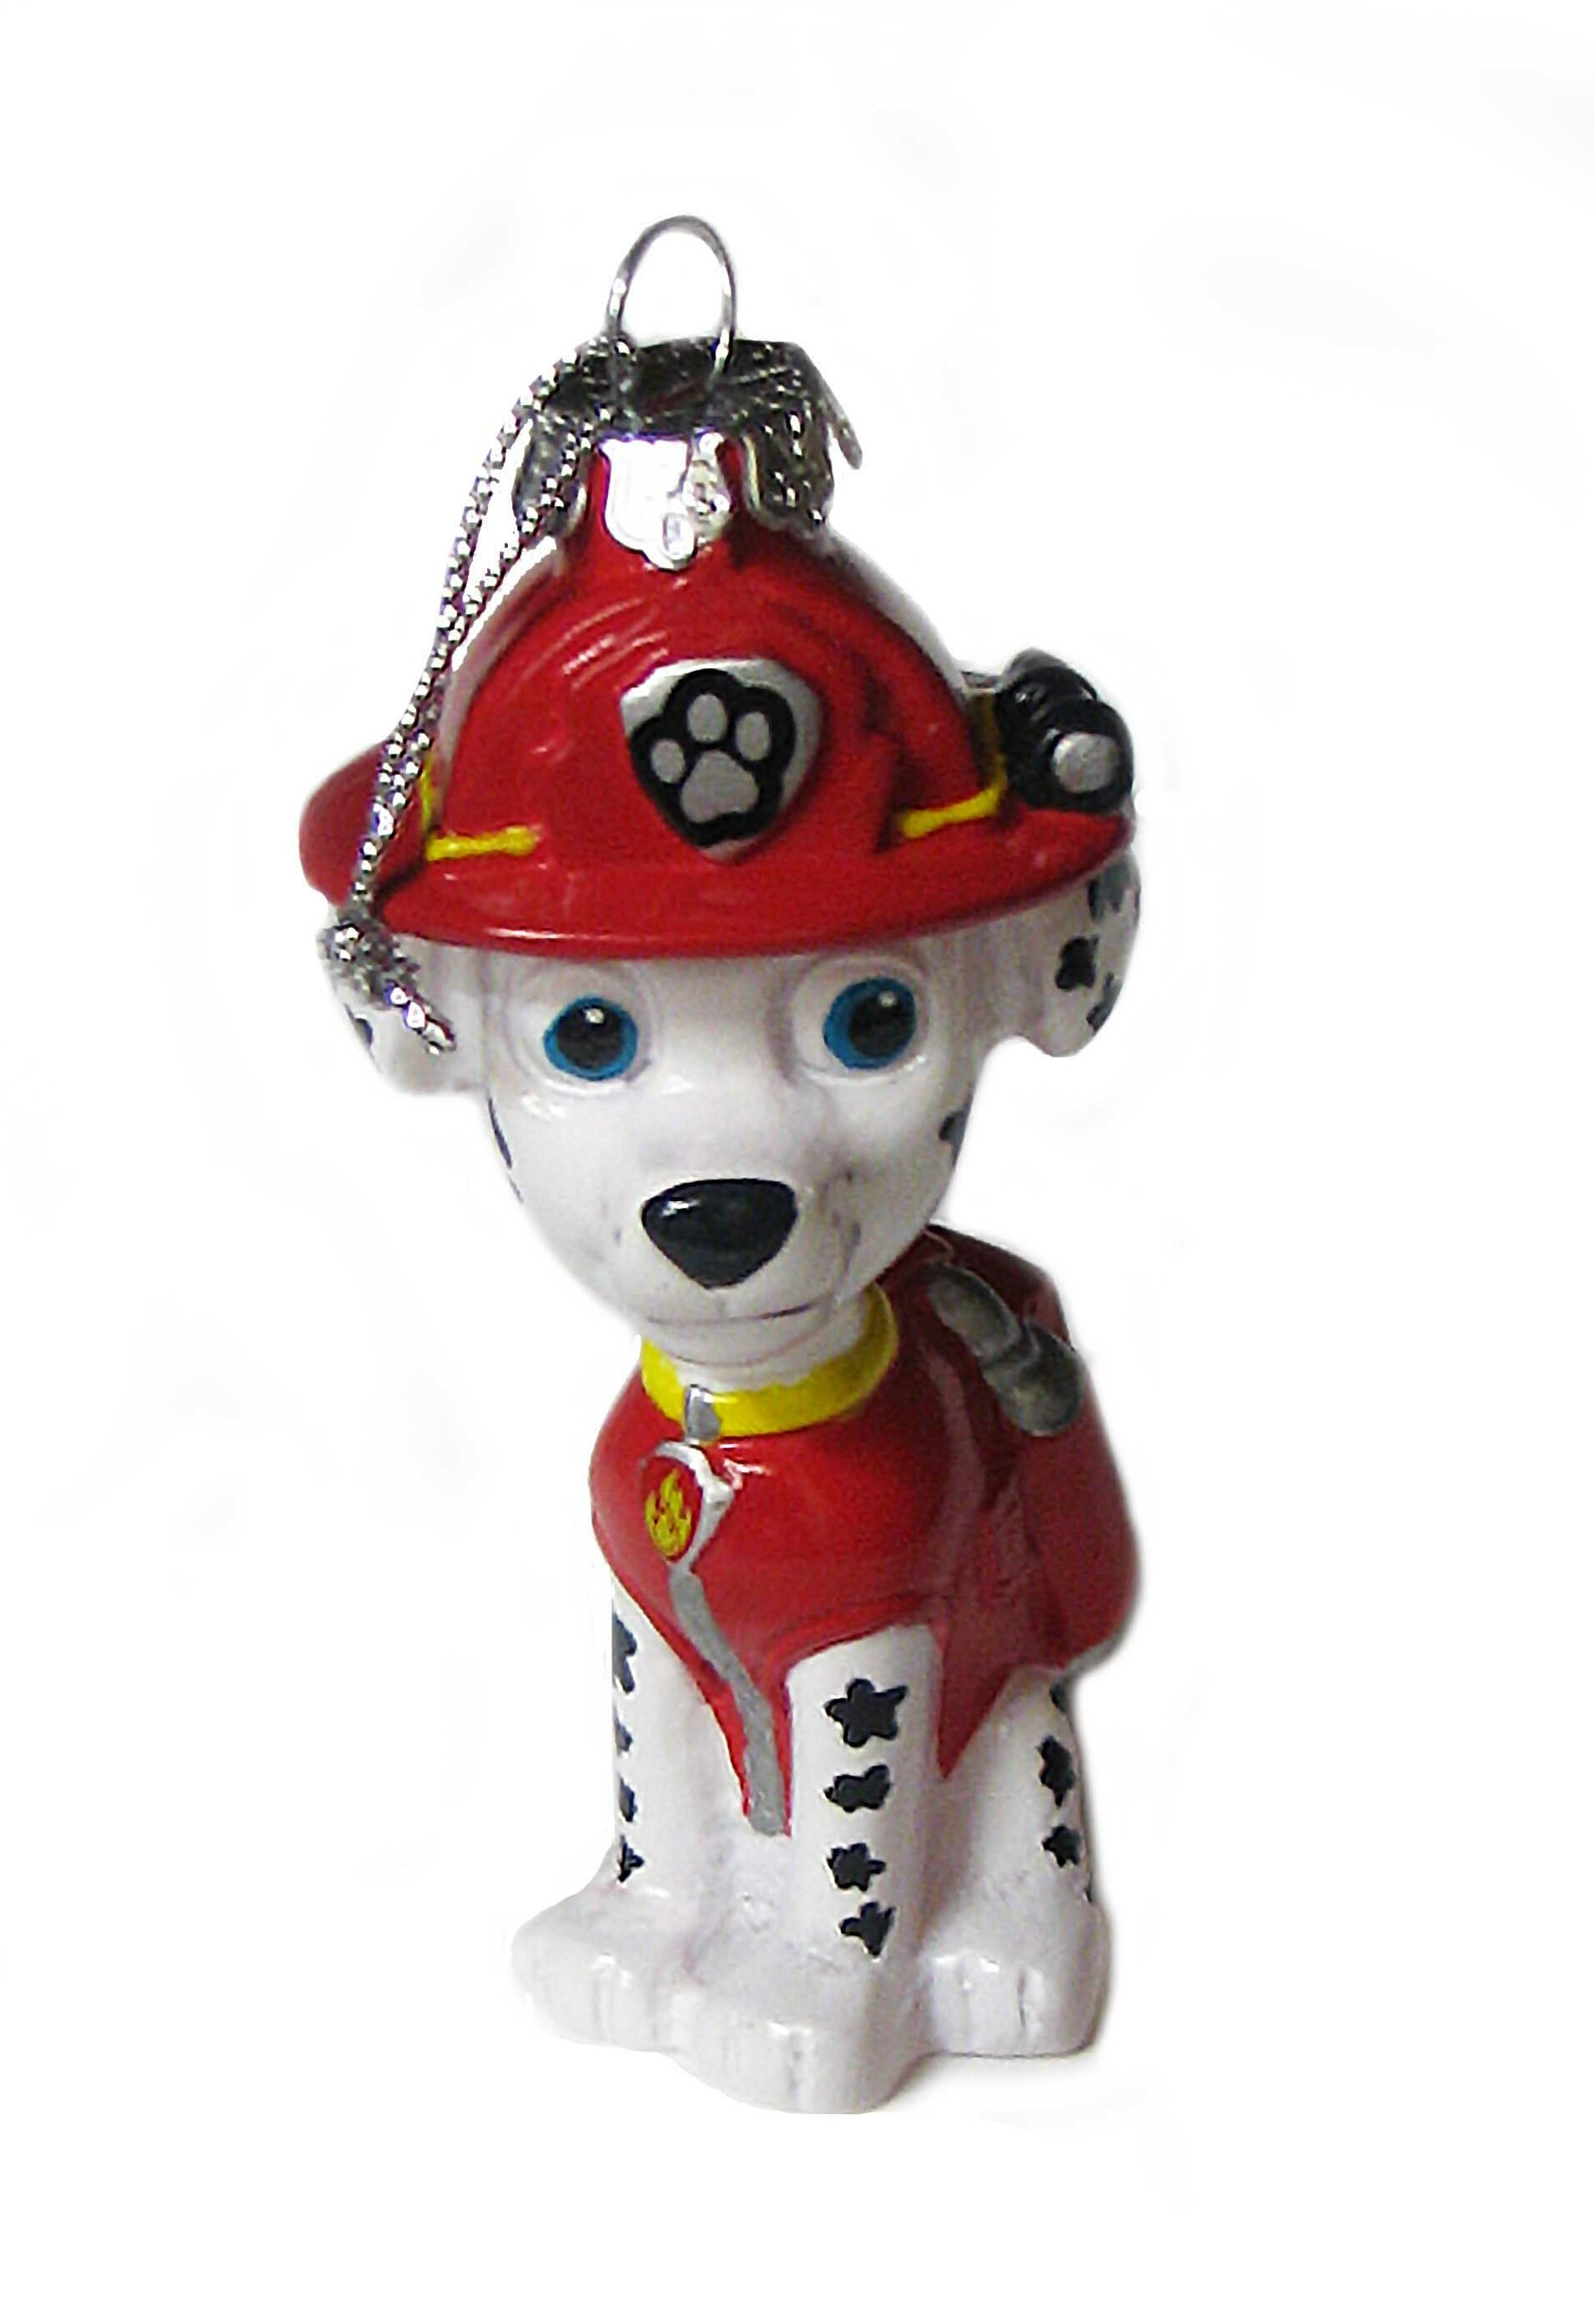 The Holiday Aisle Paw Patrol Marshall Hanging Figurine Ornament Reviews Wayfair